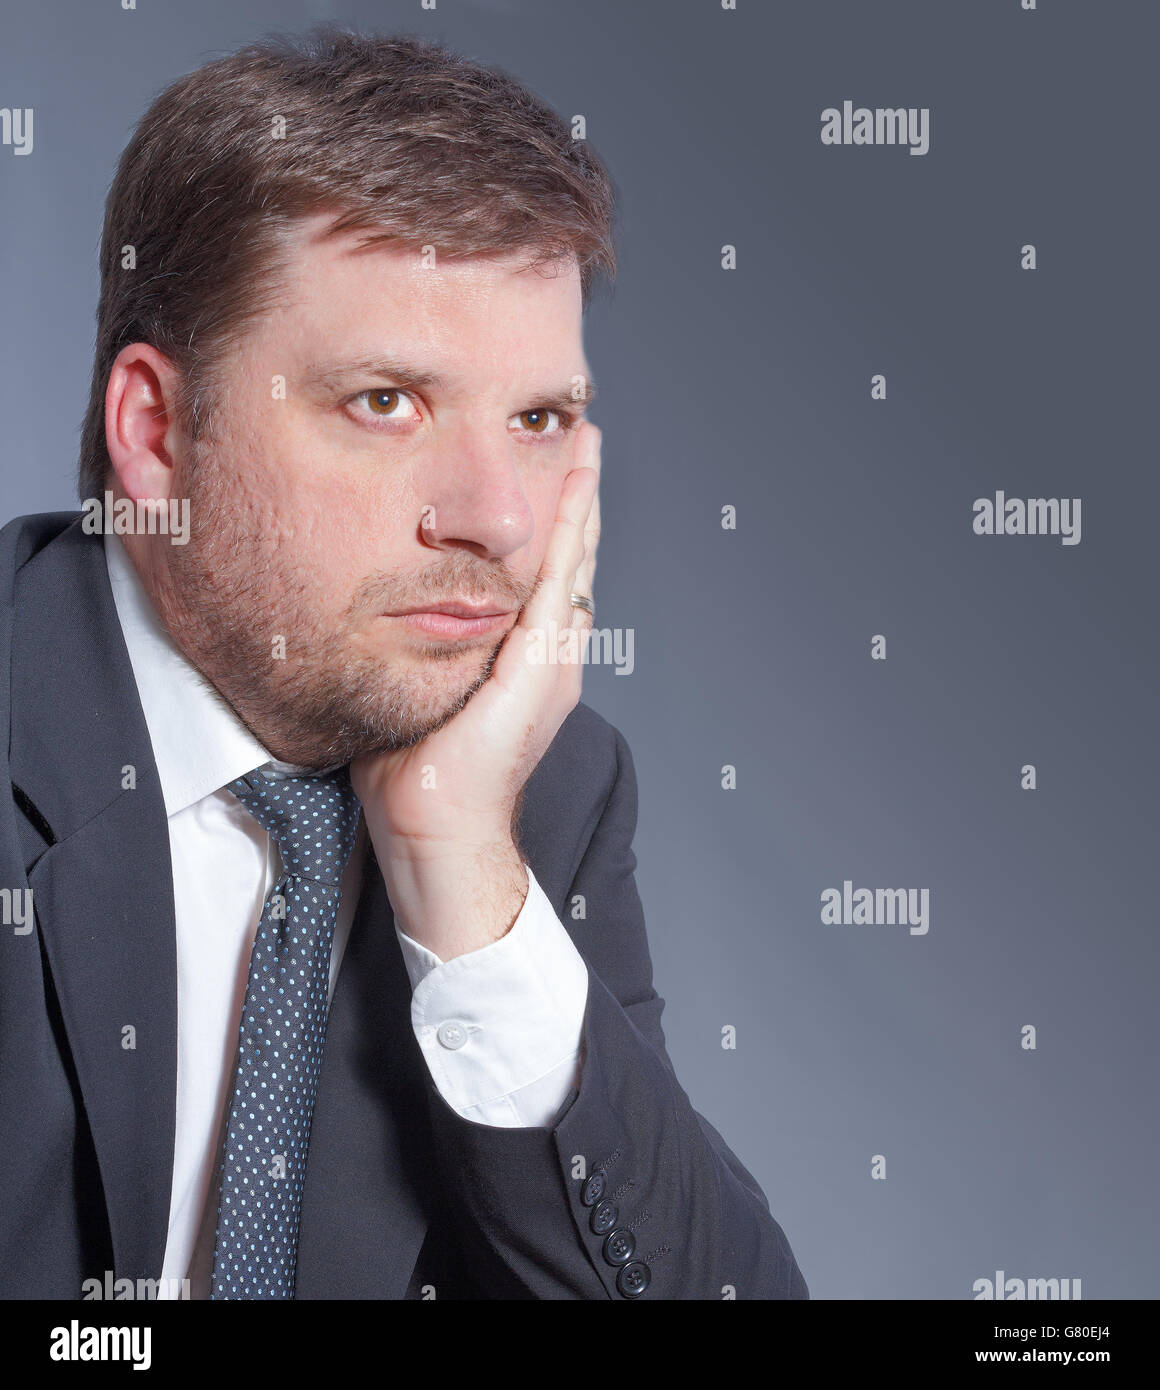 Business man worried about financial plan isolated on grey background - Stock Image